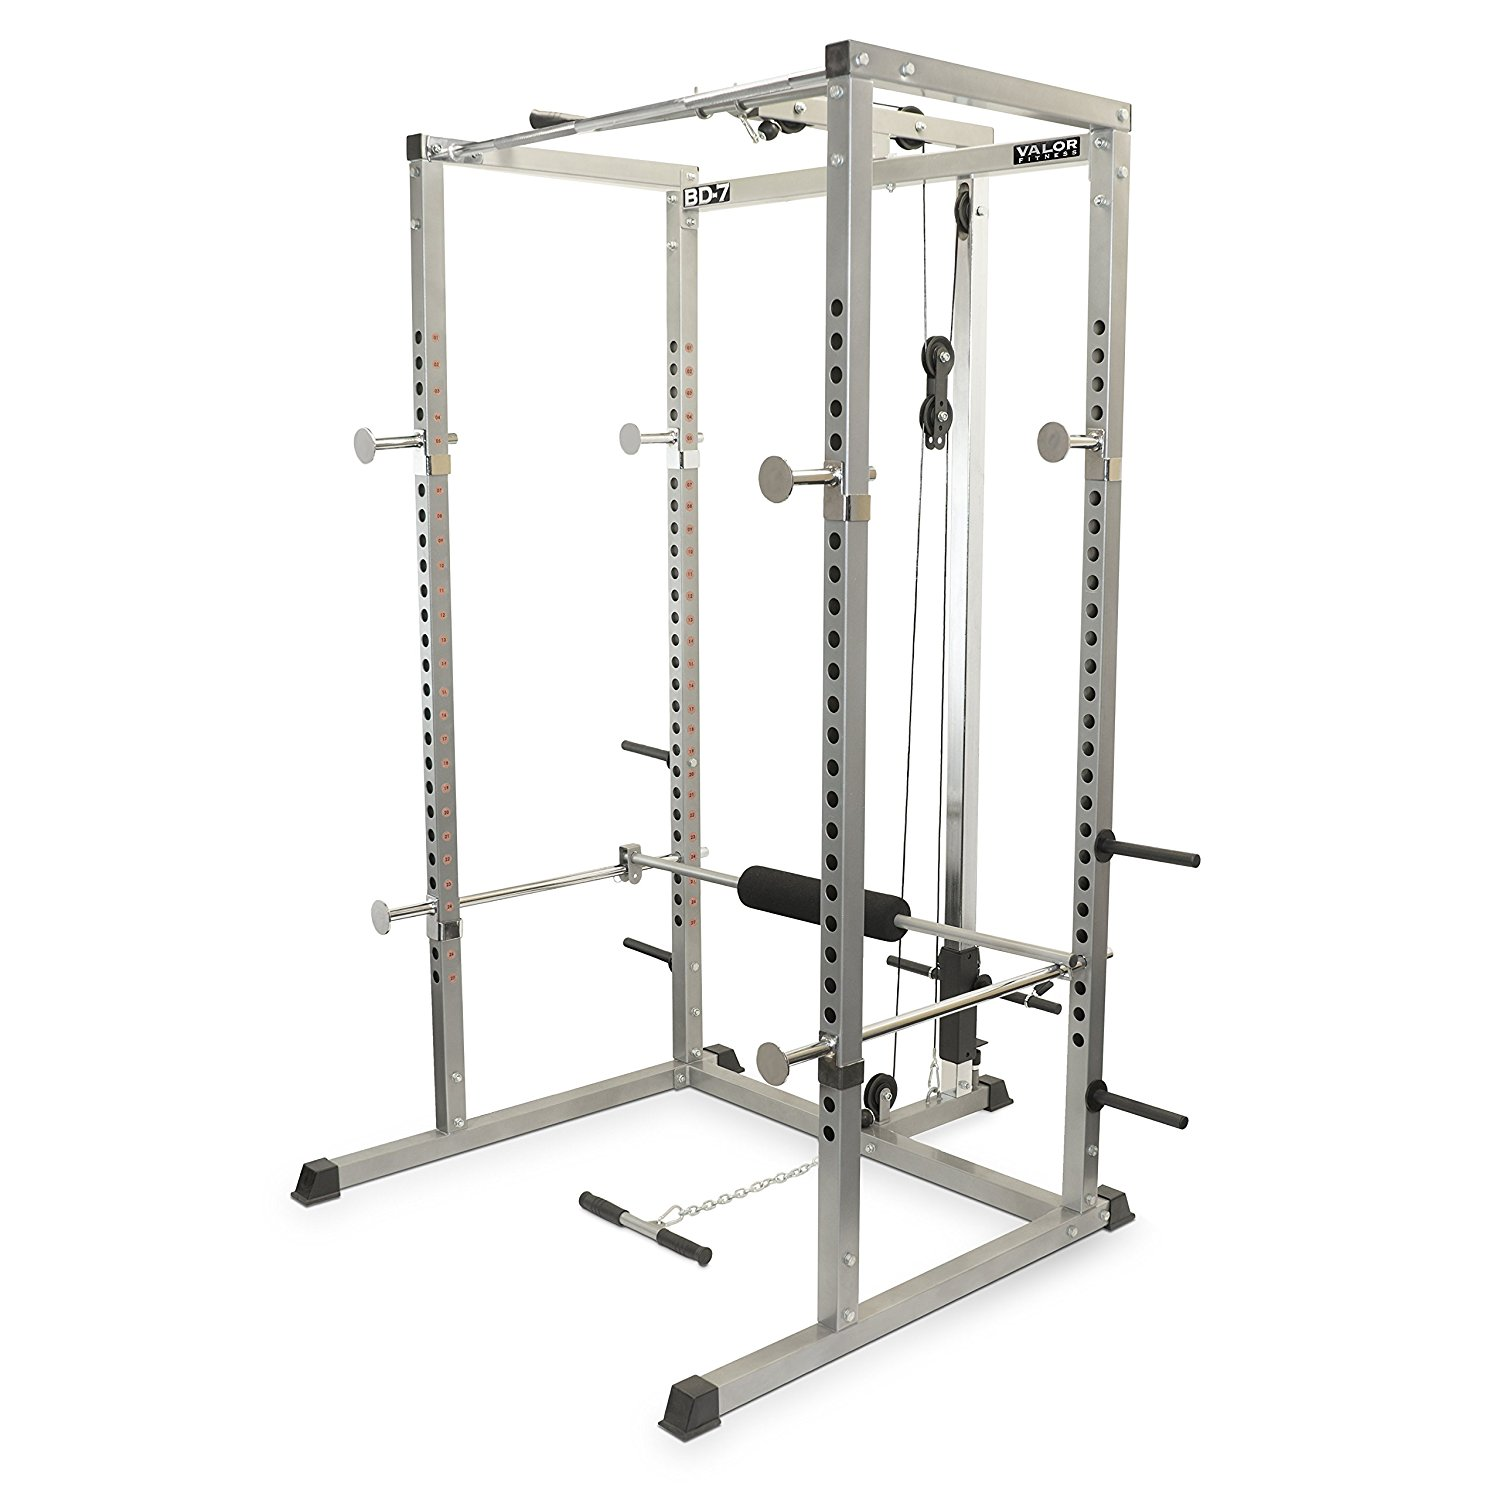 Best Power Rack Reviews January Squat Cage for a Home Gym